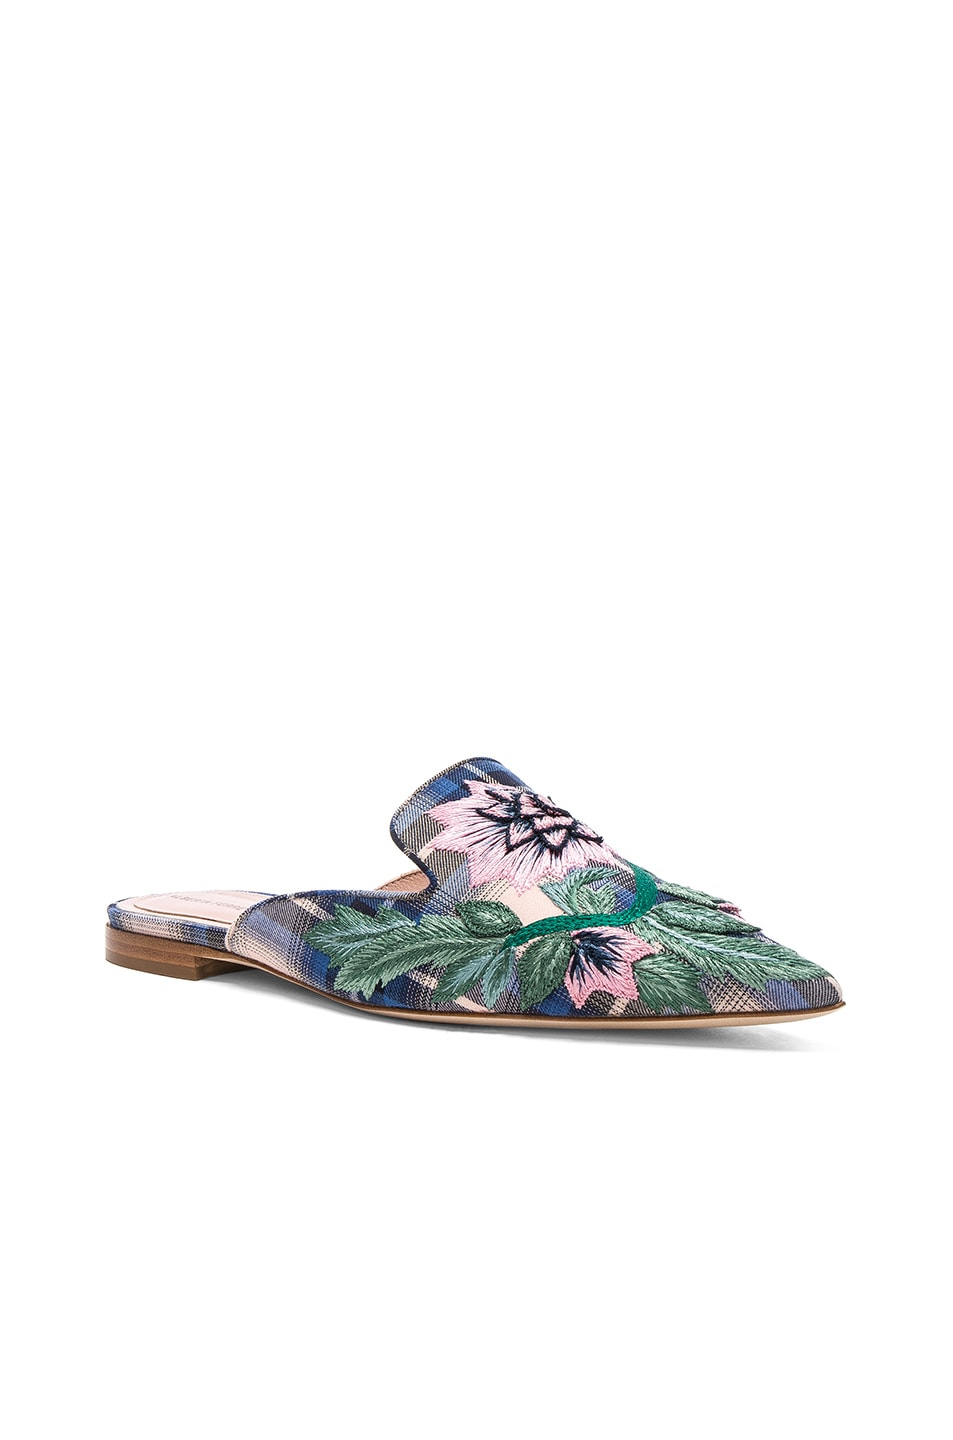 Alberta Ferretti Flower Embroidered Plaid Mules in . zAD74bn